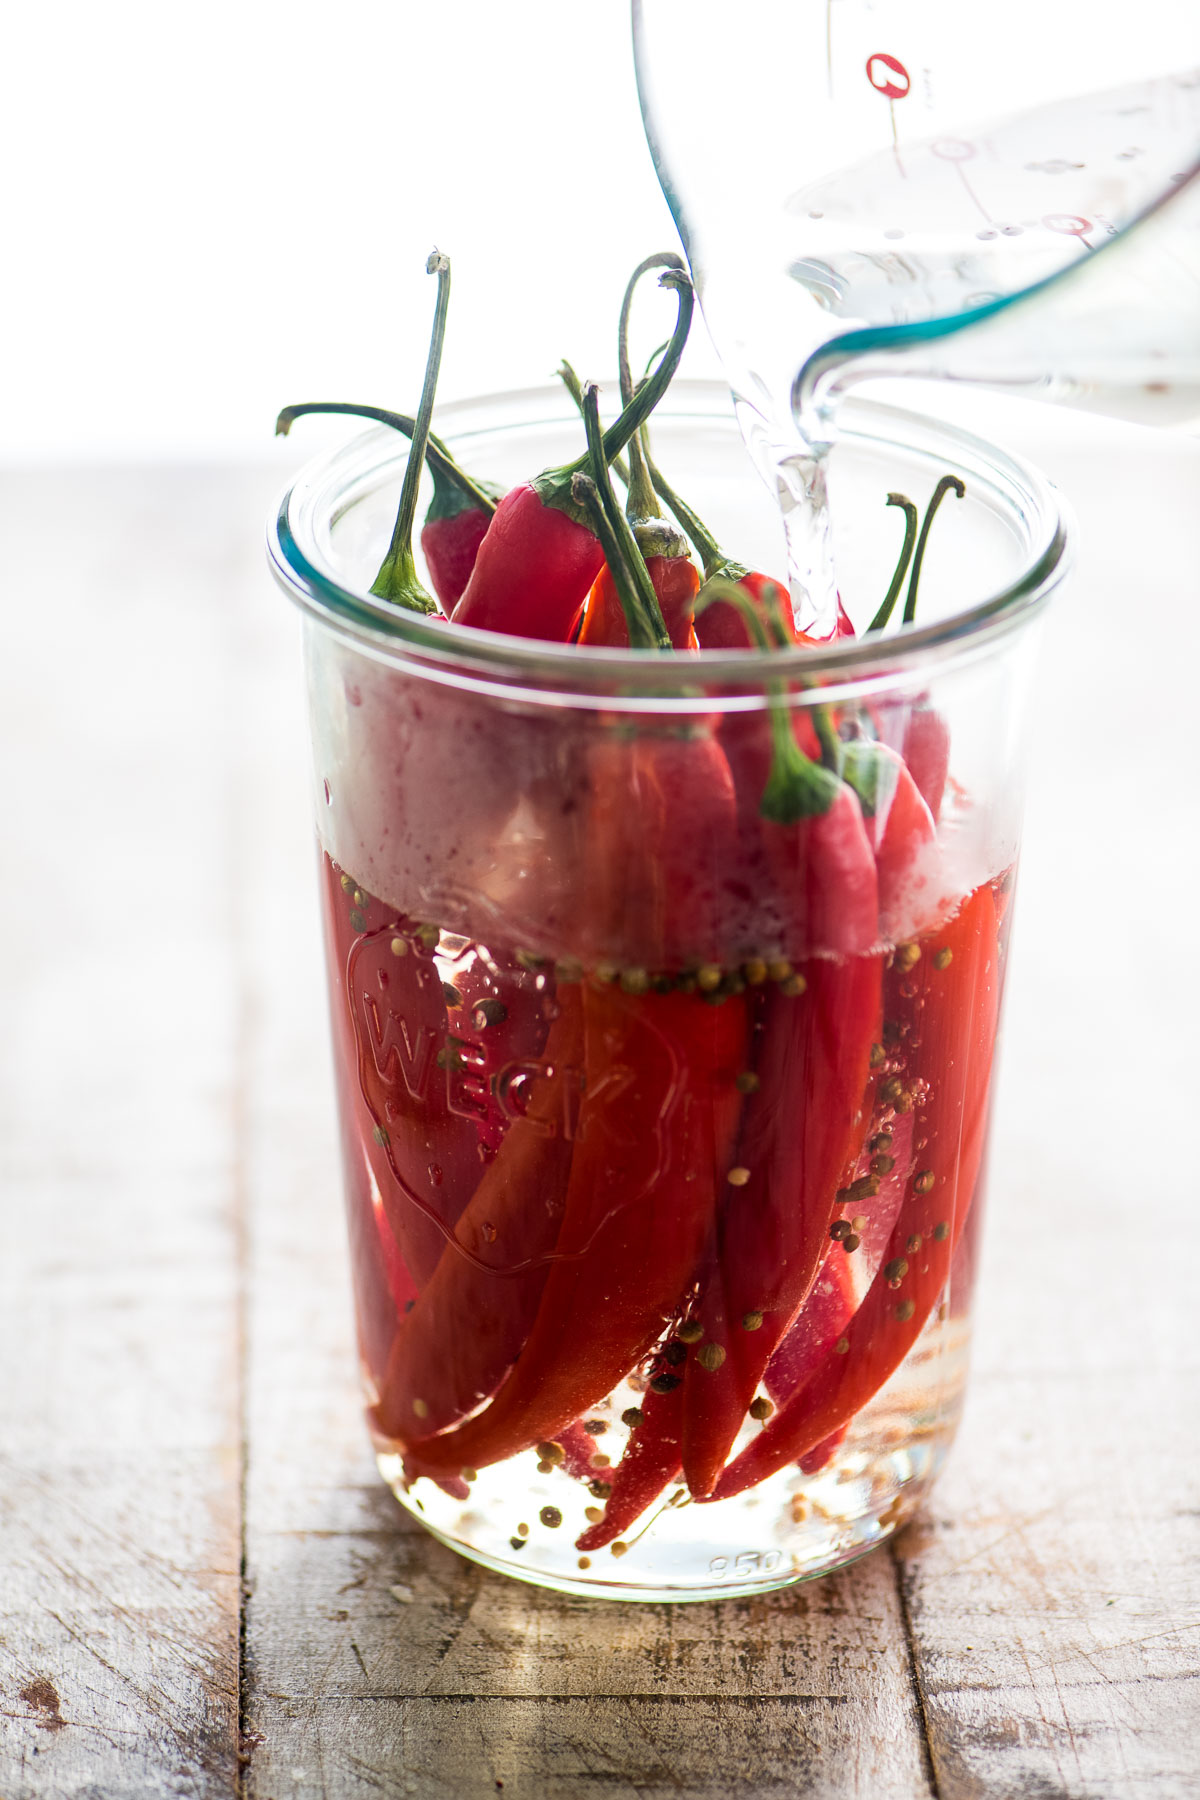 quick pickled red peppers in a jar